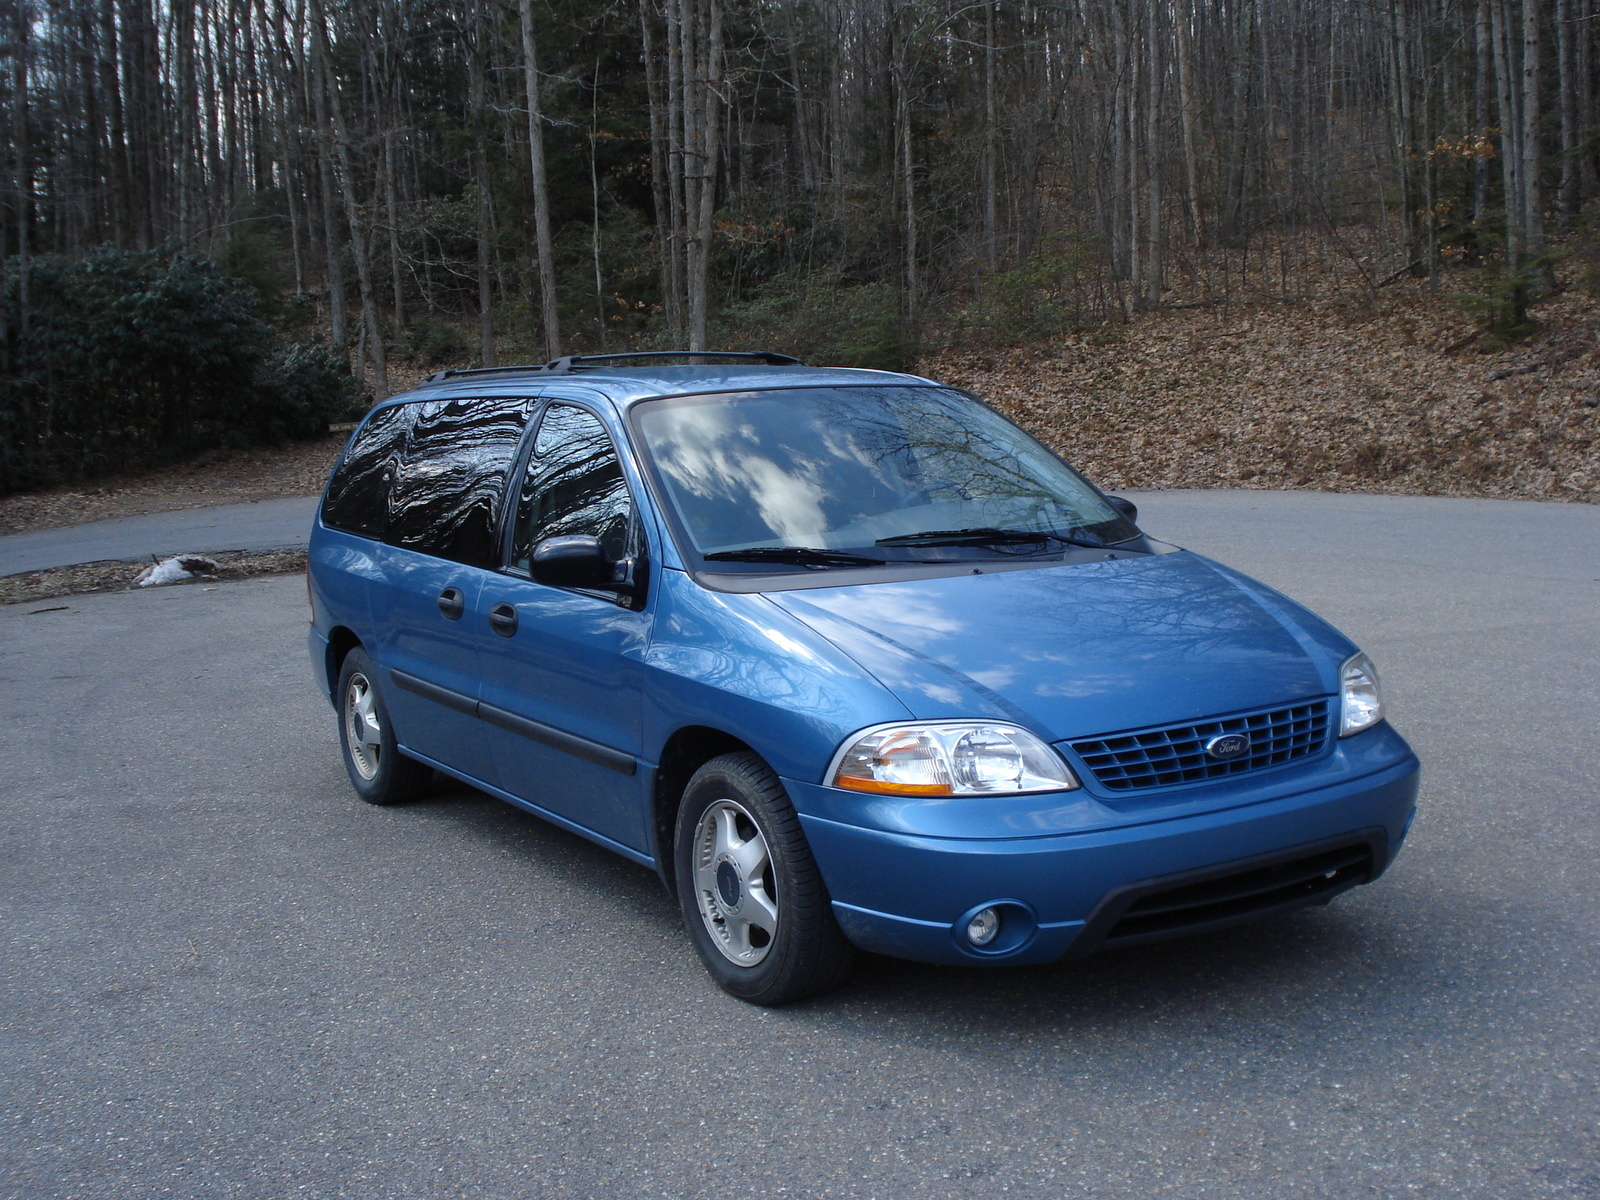 Picture of 2003 Ford Windstar LX